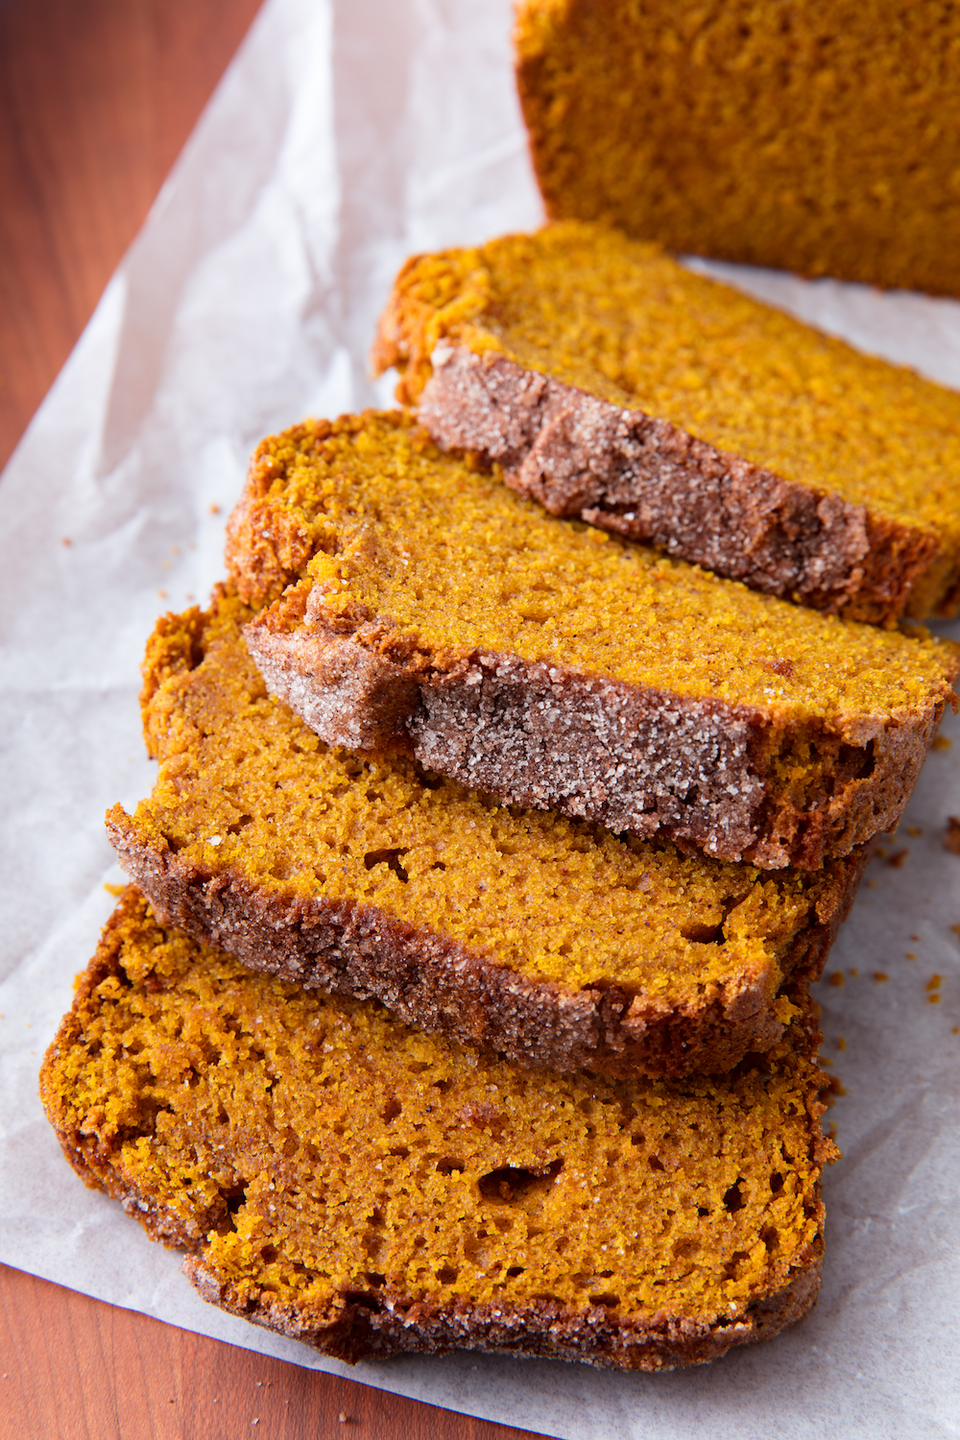 """<p>Feel free to add in chocolate chips or nuts, or just leave it perfectly plain.</p><p>Get the recipe from <a href=""""https://www.delish.com/cooking/recipe-ideas/a21581148/best-pumpkin-bread-recipe/"""" rel=""""nofollow noopener"""" target=""""_blank"""" data-ylk=""""slk:Delish"""" class=""""link rapid-noclick-resp"""">Delish</a>.</p>"""